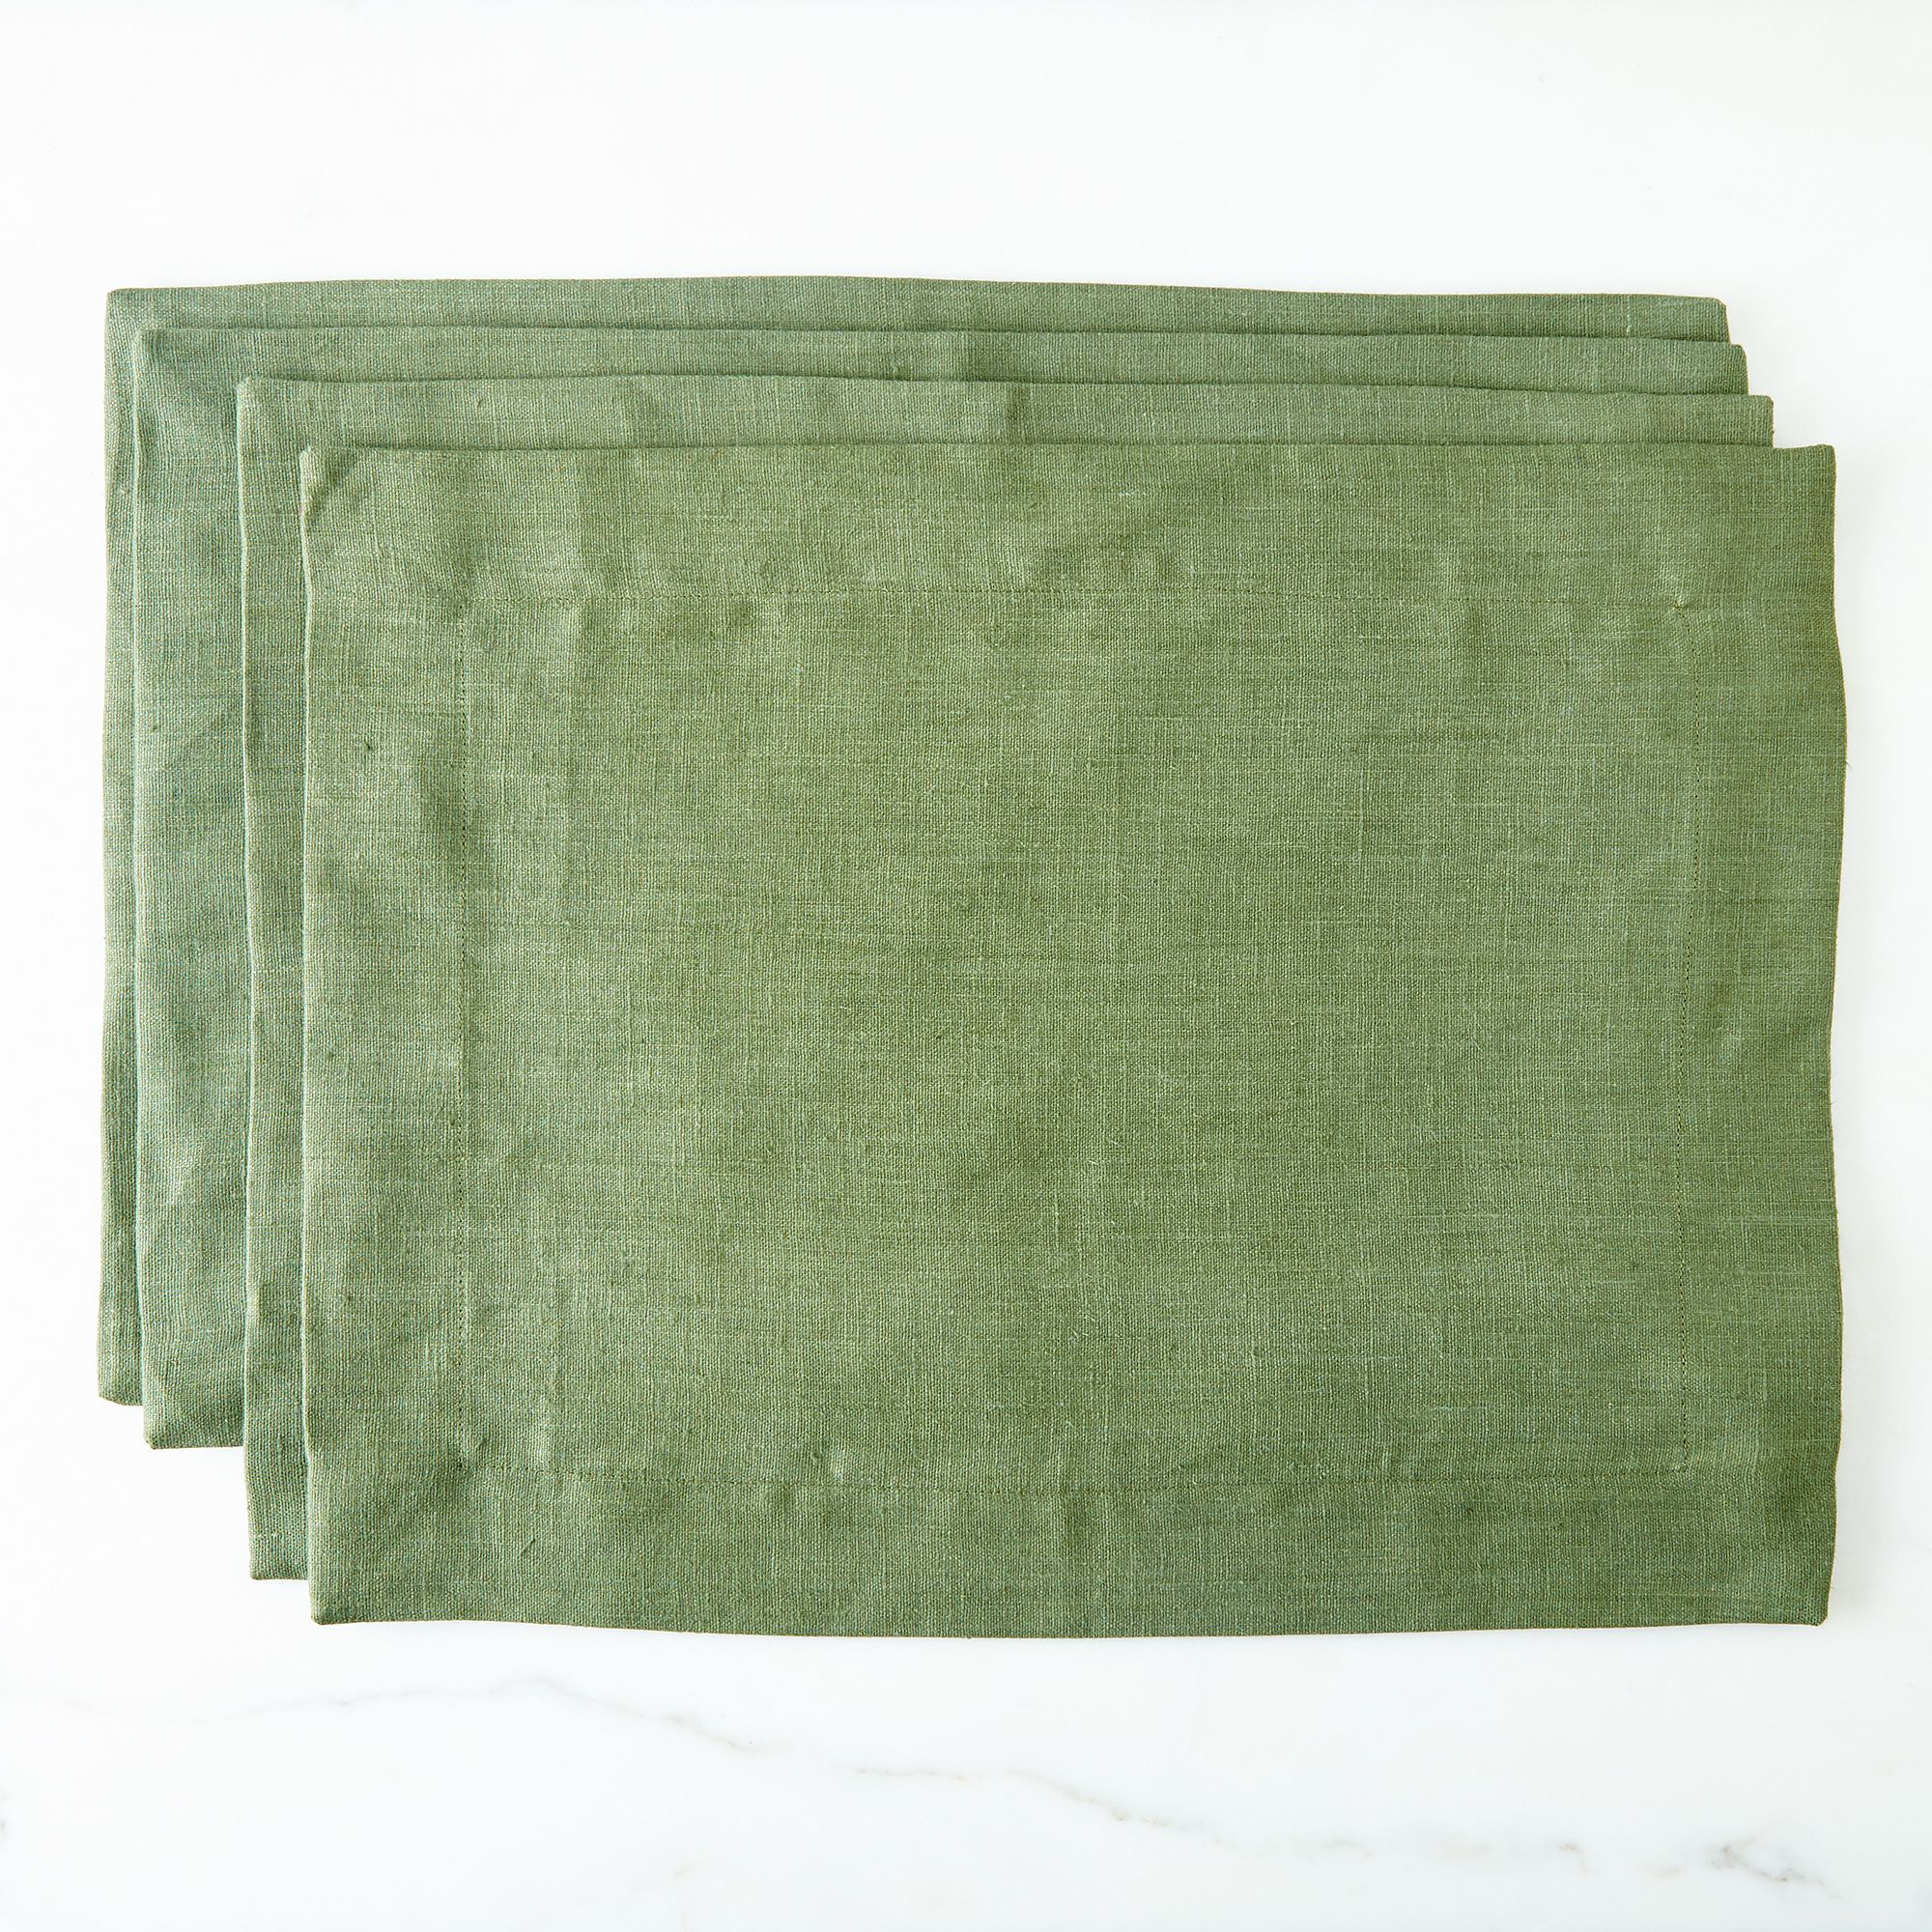 2075406c a0f9 11e5 a190 0ef7535729df  2015 1009 lakeshore linen holiday linen placemats set of 4 green silo rocky luten 016